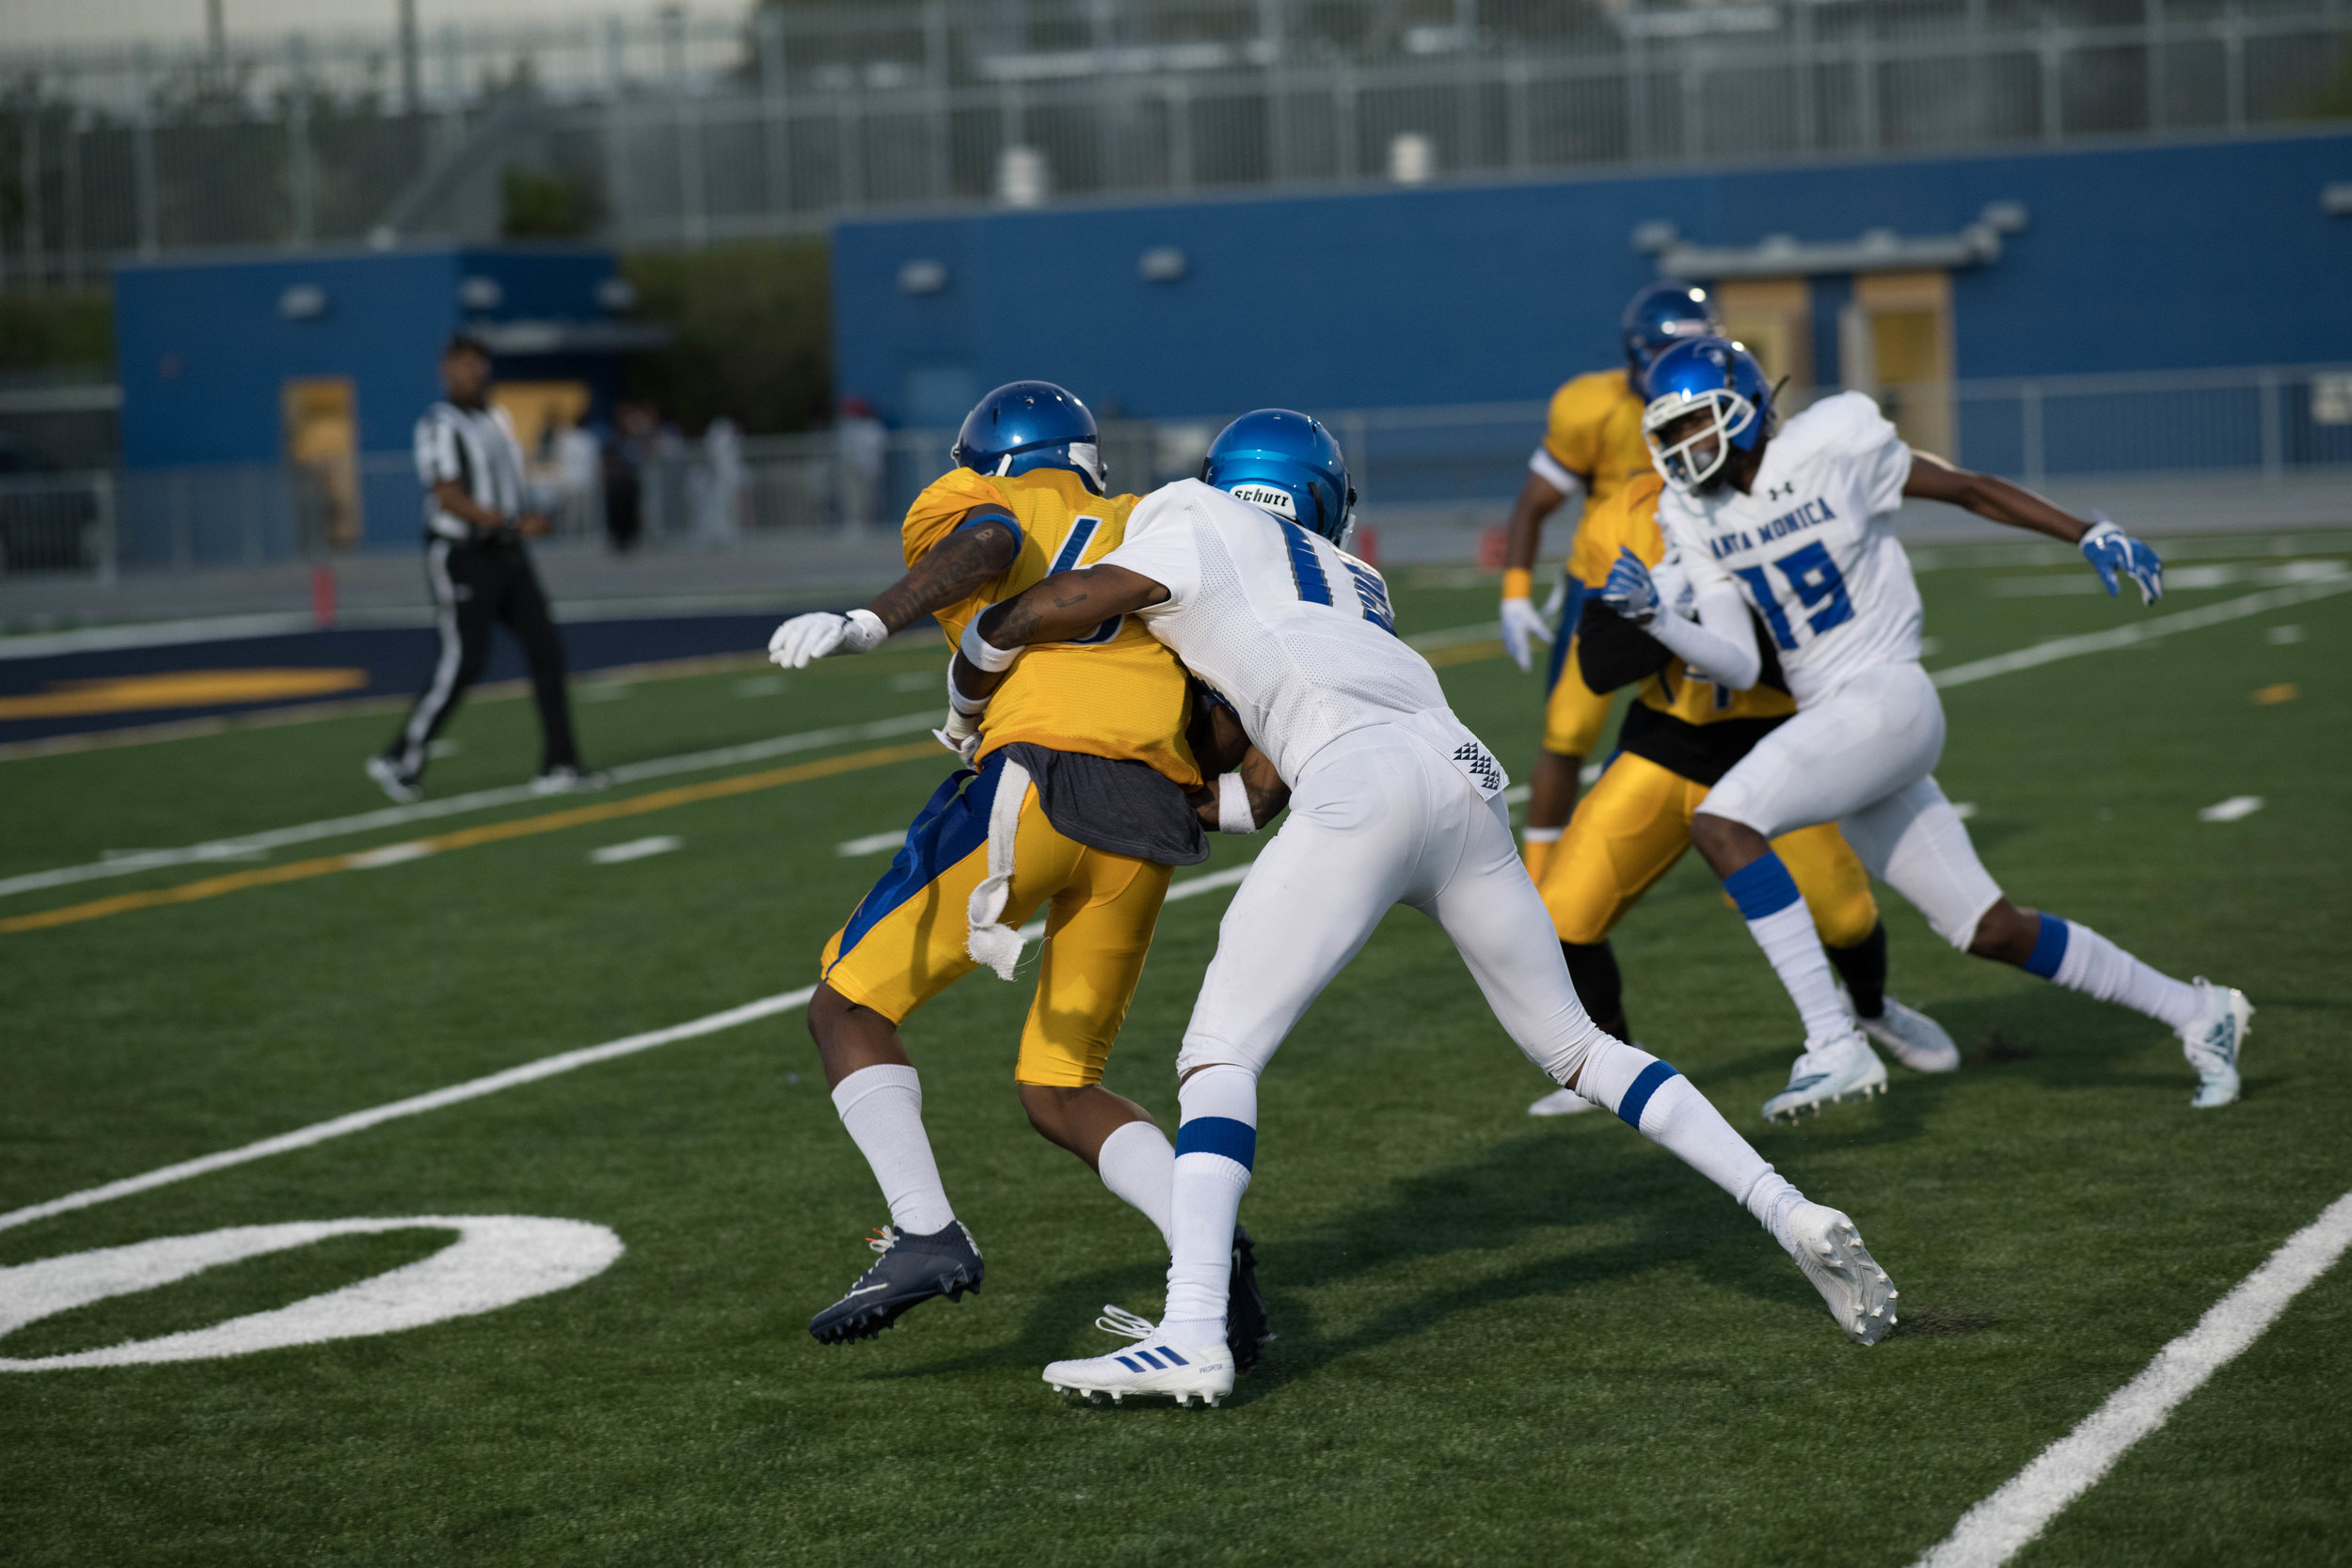 #18 Jardon Quarterman makes a tackle on one of Southwest receivers after the catch.(Photo by Kevin Tidmore/The Corsair)